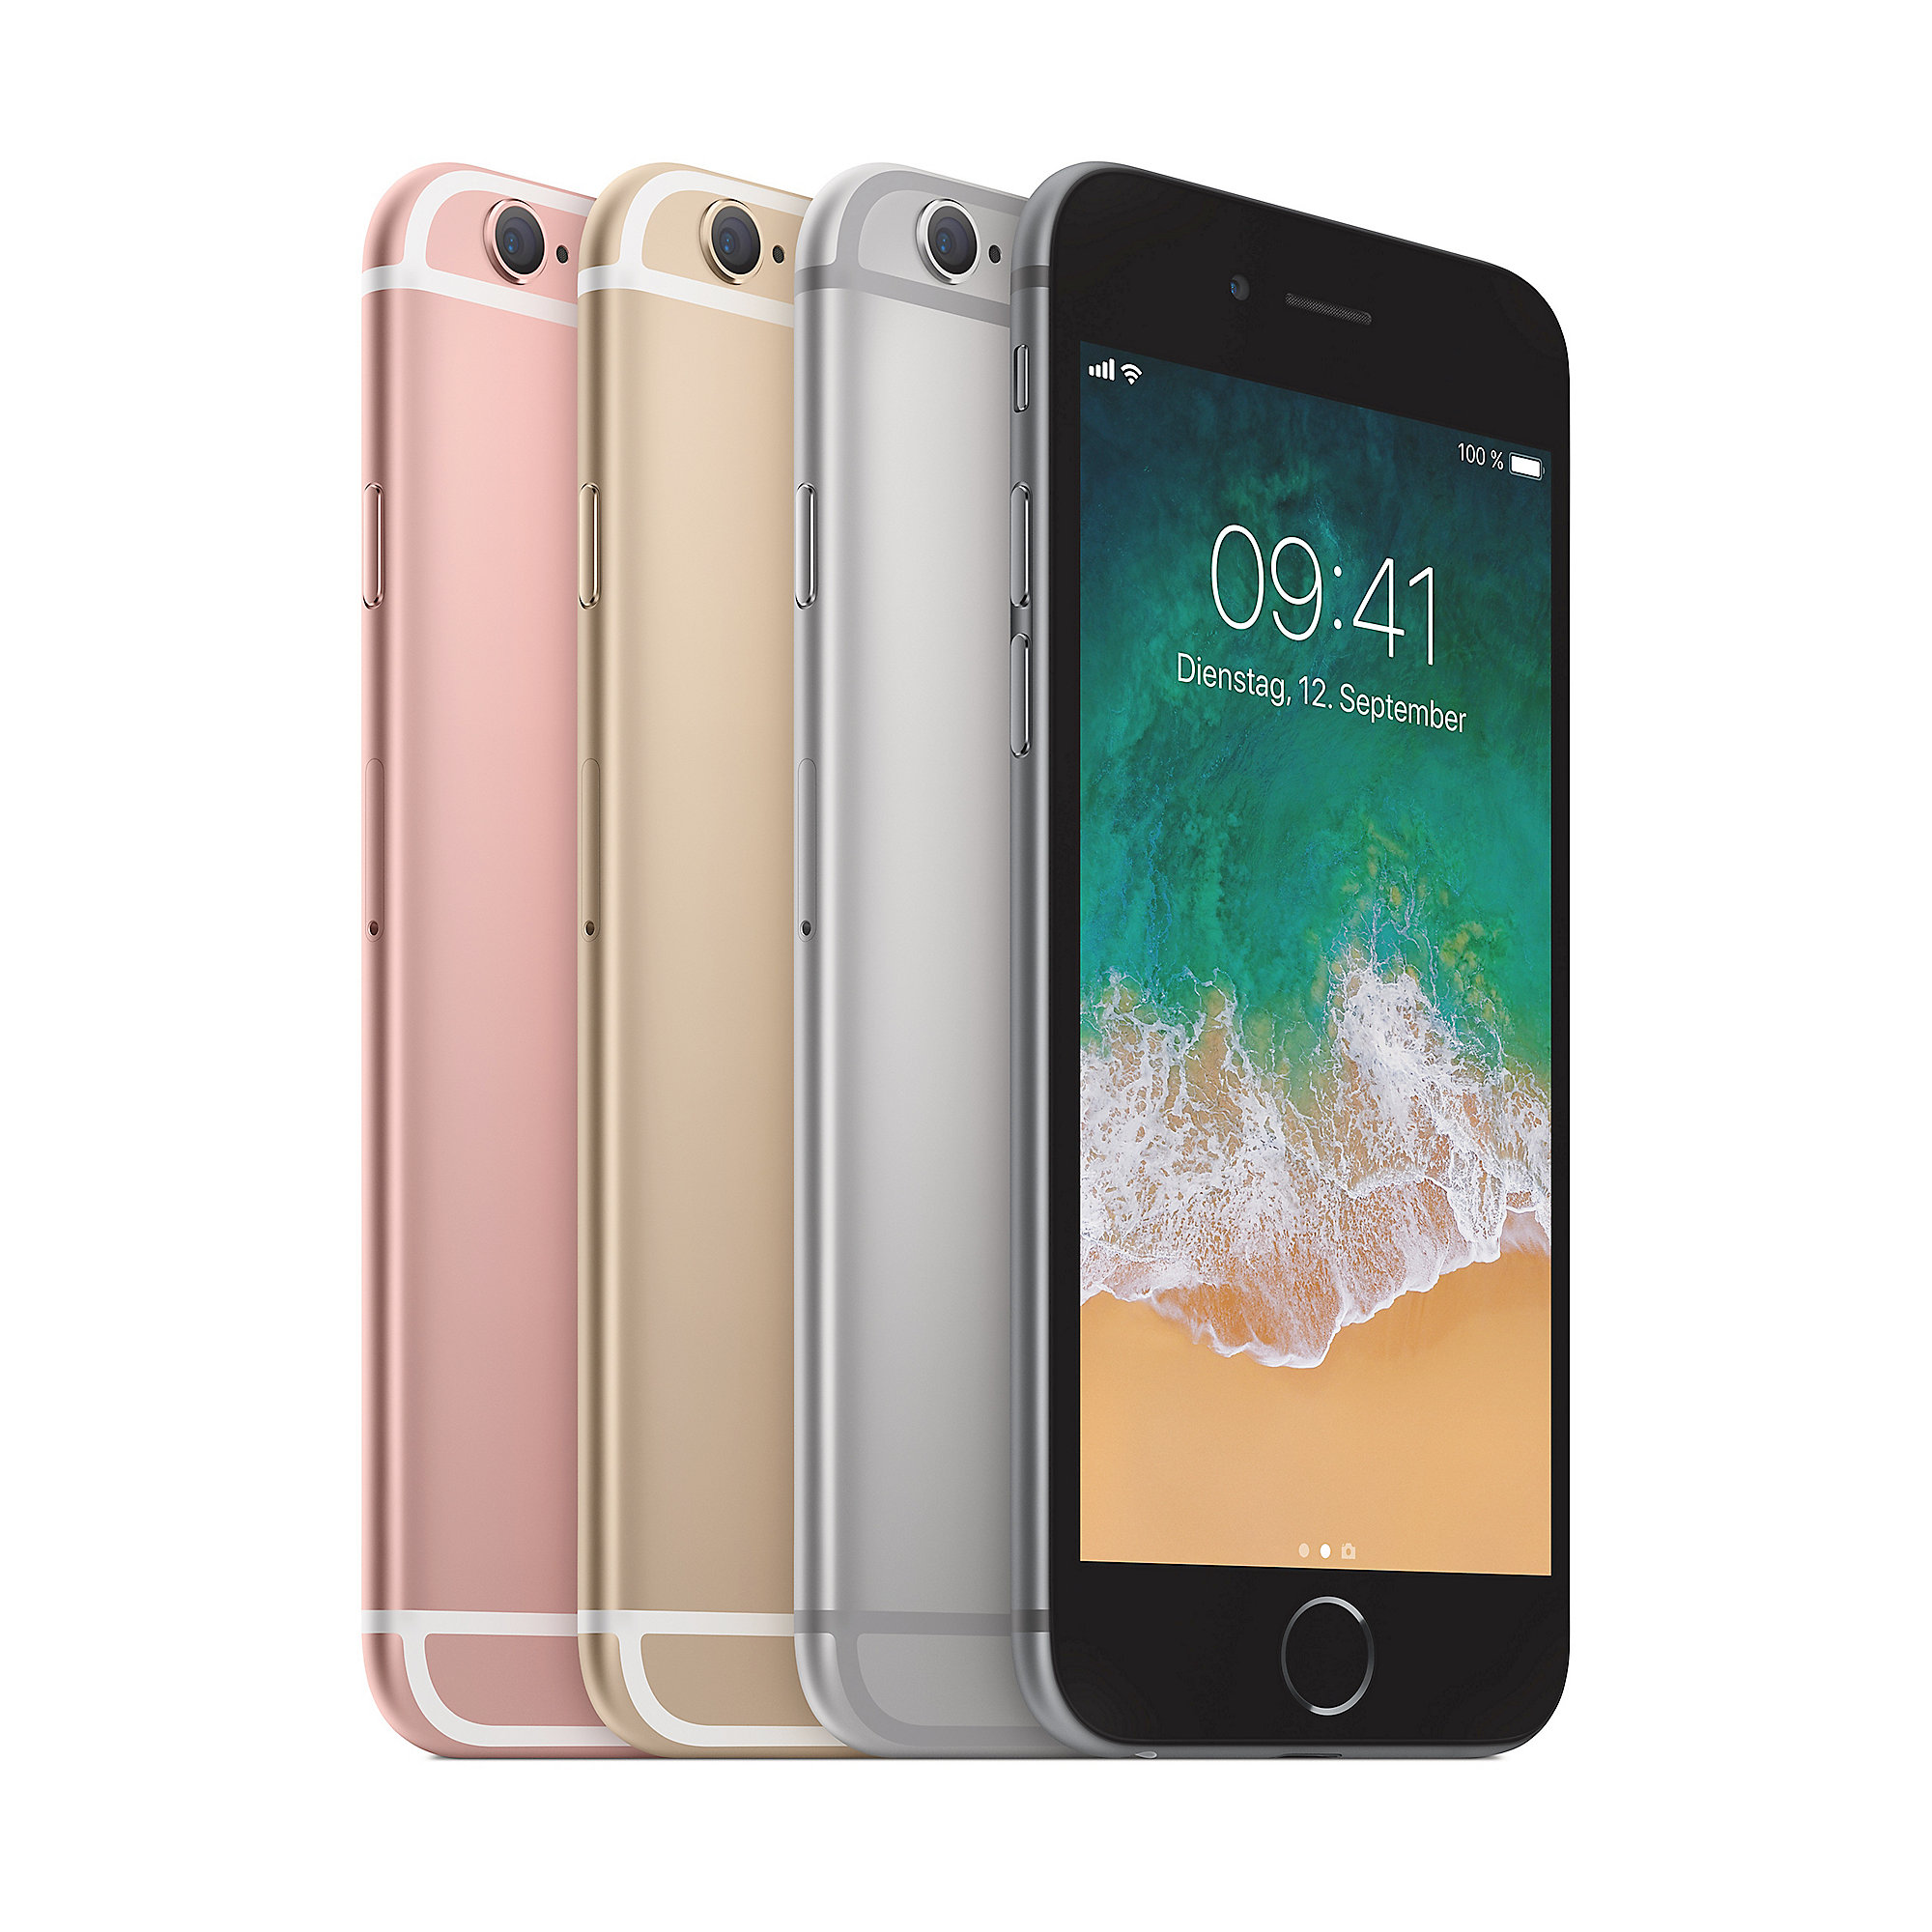 apple iphone 6s 128 gb ros gold mkqw2zd a cyberport. Black Bedroom Furniture Sets. Home Design Ideas